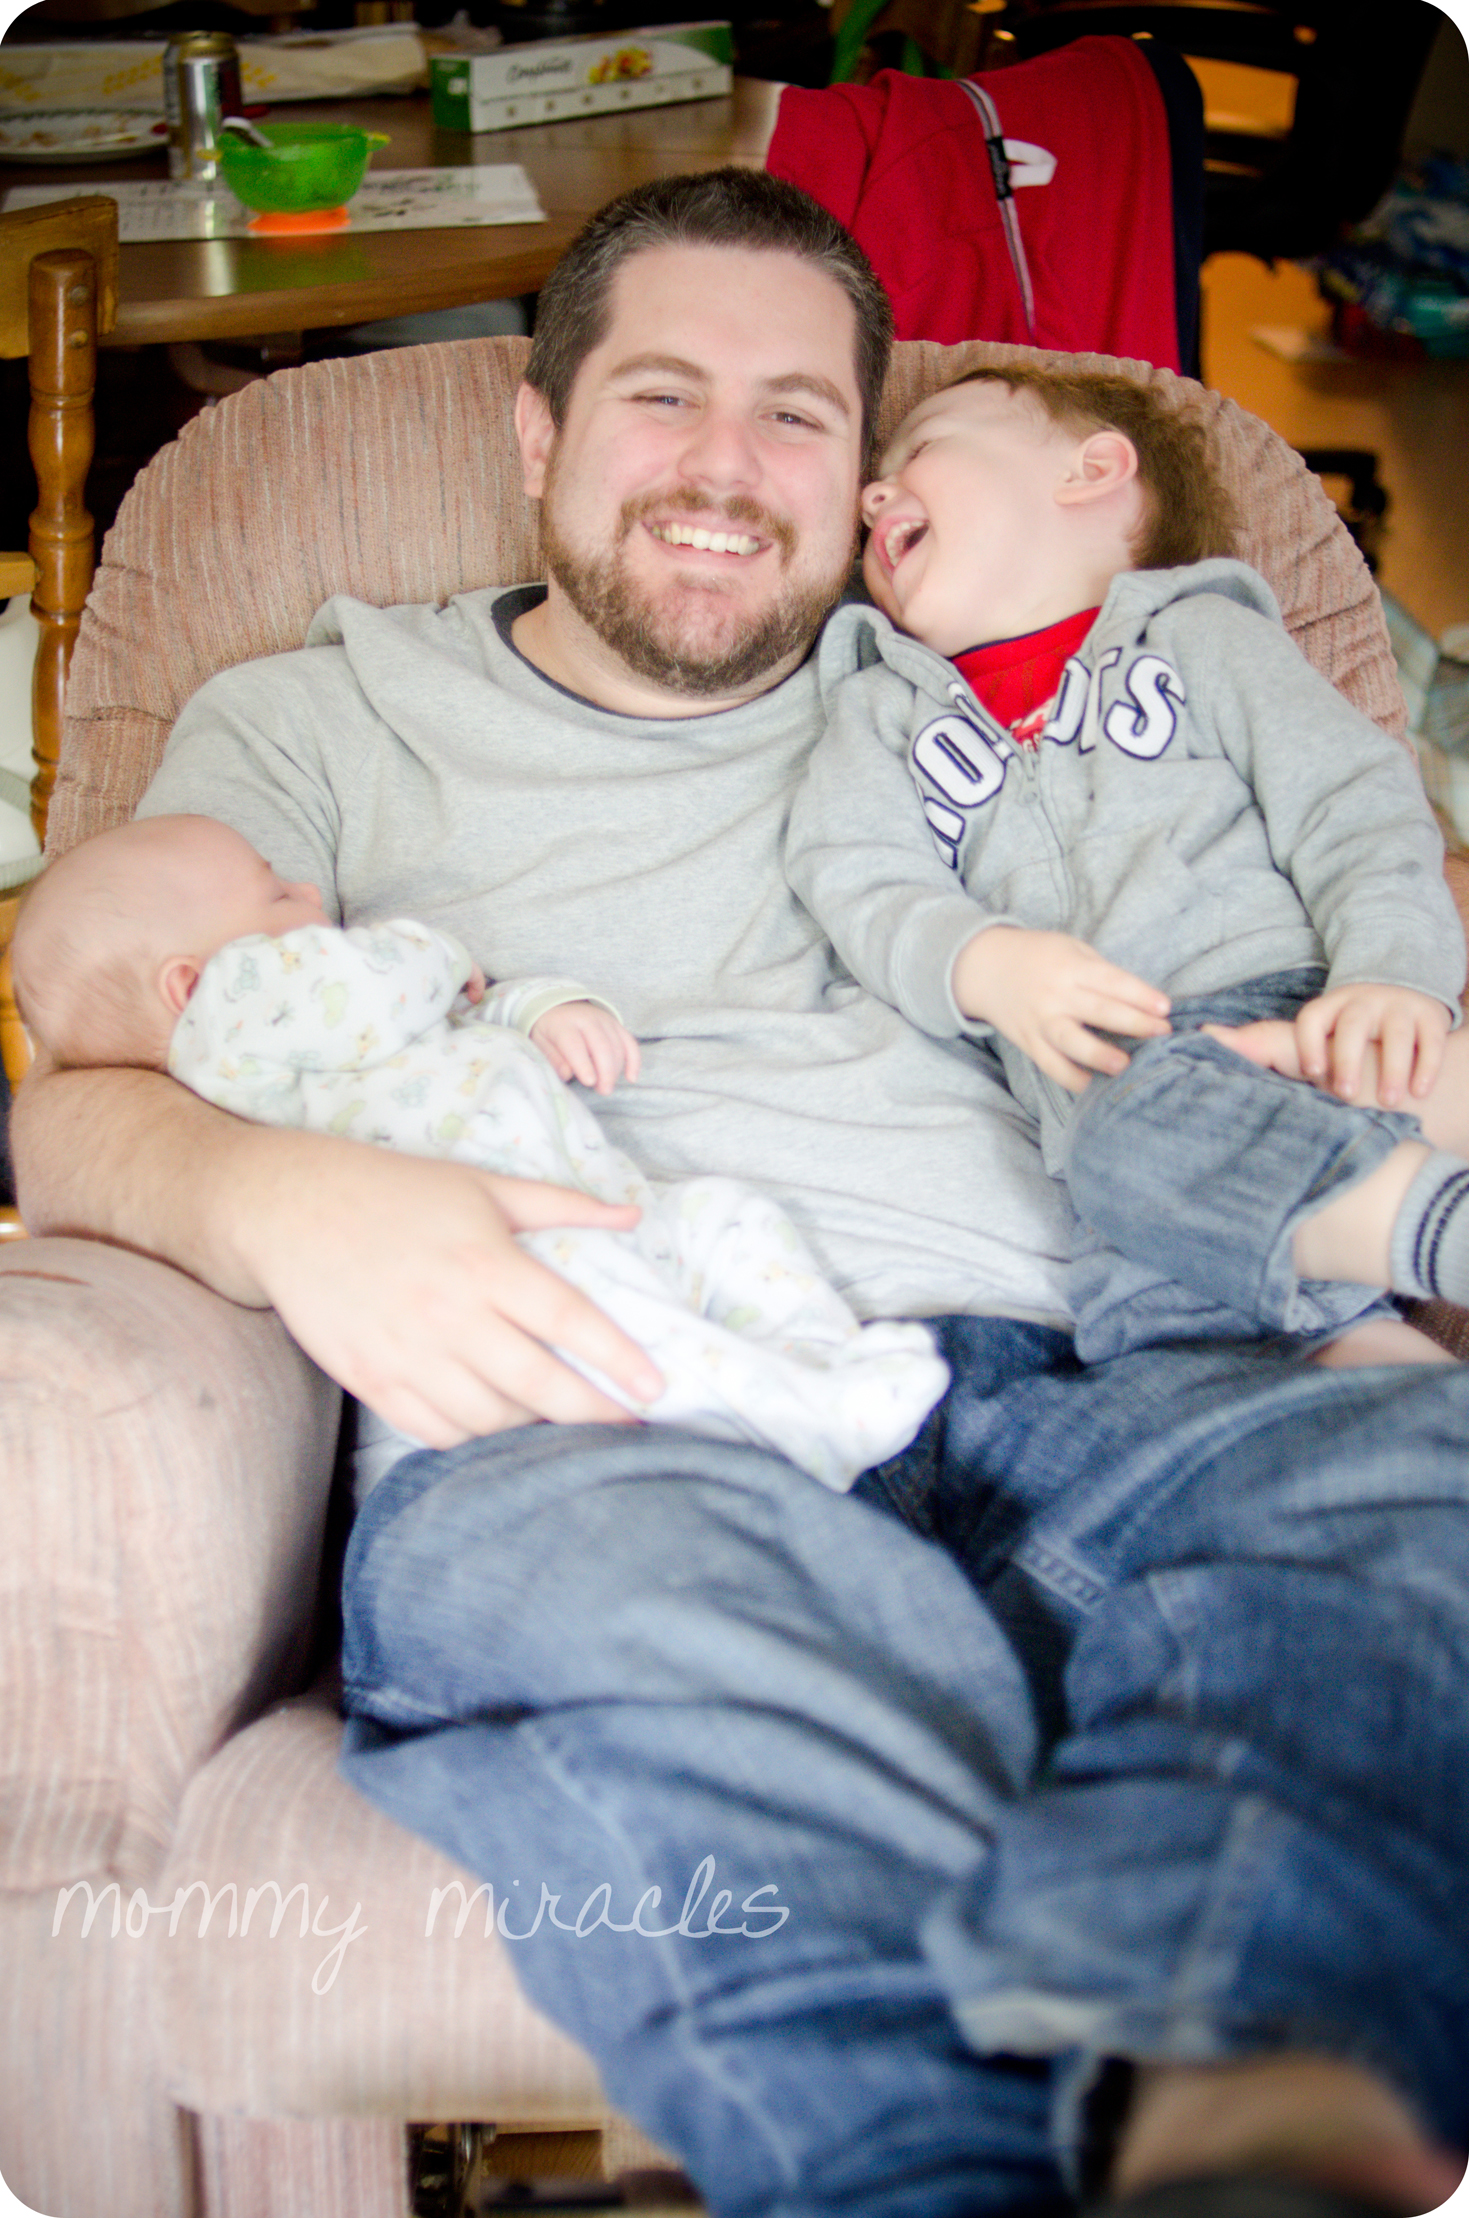 mommy-miracles.com_wp-content_uploads_2012_06_Fathers-Day-4